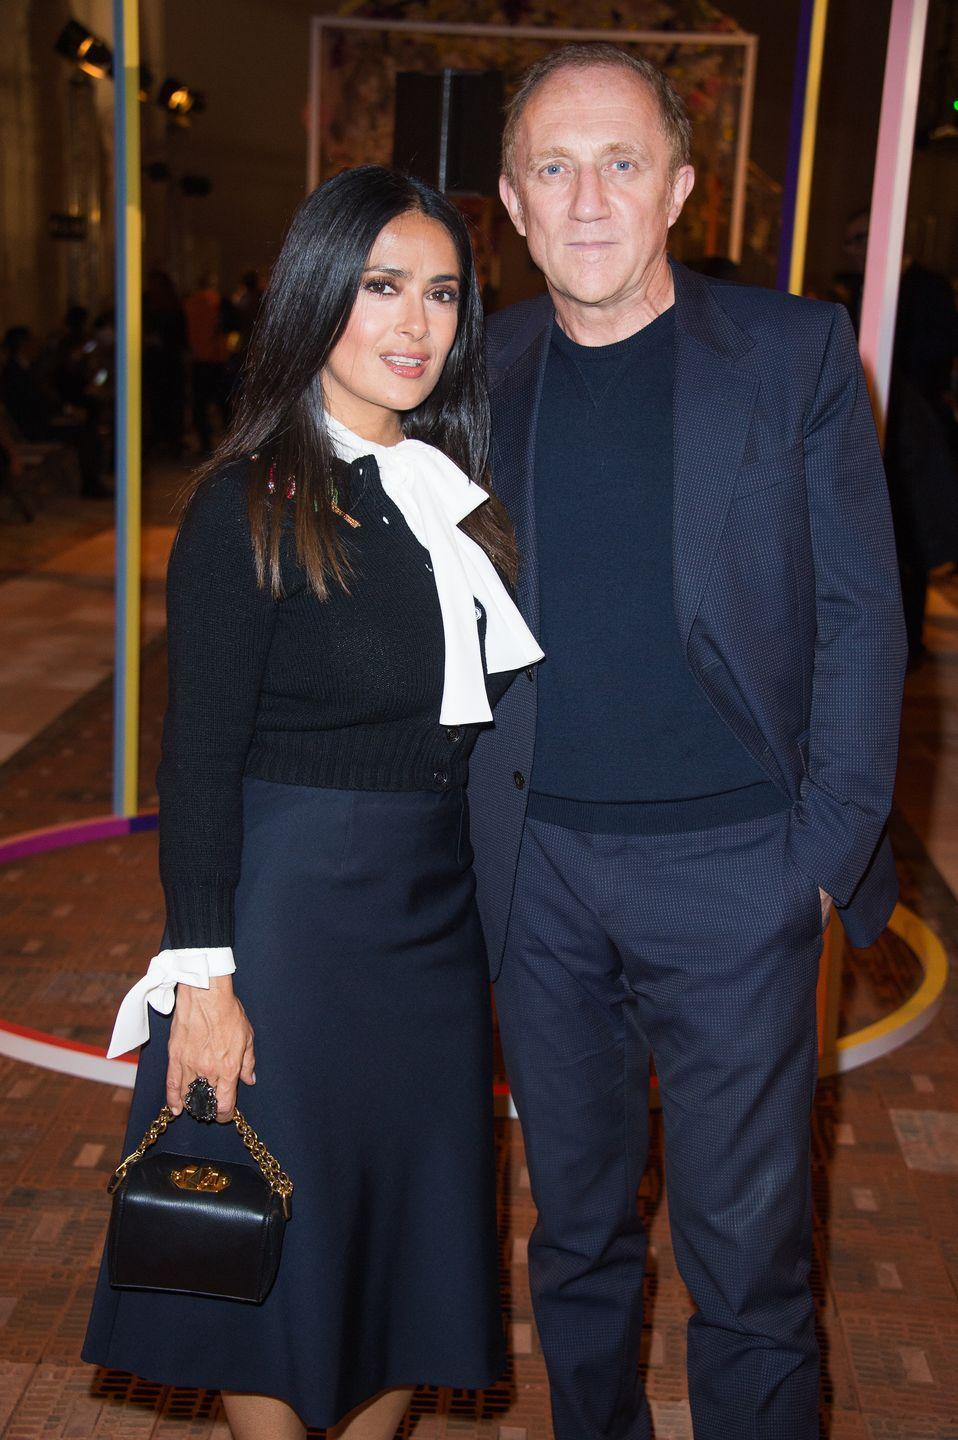 """<p><strong>How long they've been together: </strong>We know Hayek and Pinault met in 2006 at a charity gala in Venice and that they announced their pregnancy and engagement at the same time in 2007, but there isn't much more the couple is willing to share. """"It's such a romantic, amazing story, but it is mine. I don't want to vulgarize it by making it into a story to make myself interesting,"""" Hayek told <em><a href=""""https://www.townandcountrymag.com/leisure/arts-and-culture/a26414988/salma-hayek-interview-april-2019/"""" rel=""""nofollow noopener"""" target=""""_blank"""" data-ylk=""""slk:Town and Country"""" class=""""link rapid-noclick-resp"""">Town and Country</a> </em>in 2019. </p><p><strong>Why you forgot they're <strong>together</strong>: </strong>Hayek and Pinault are incredibly supportive of one another on the red carpet, but they like to create boundaries around their personal lives. </p>"""